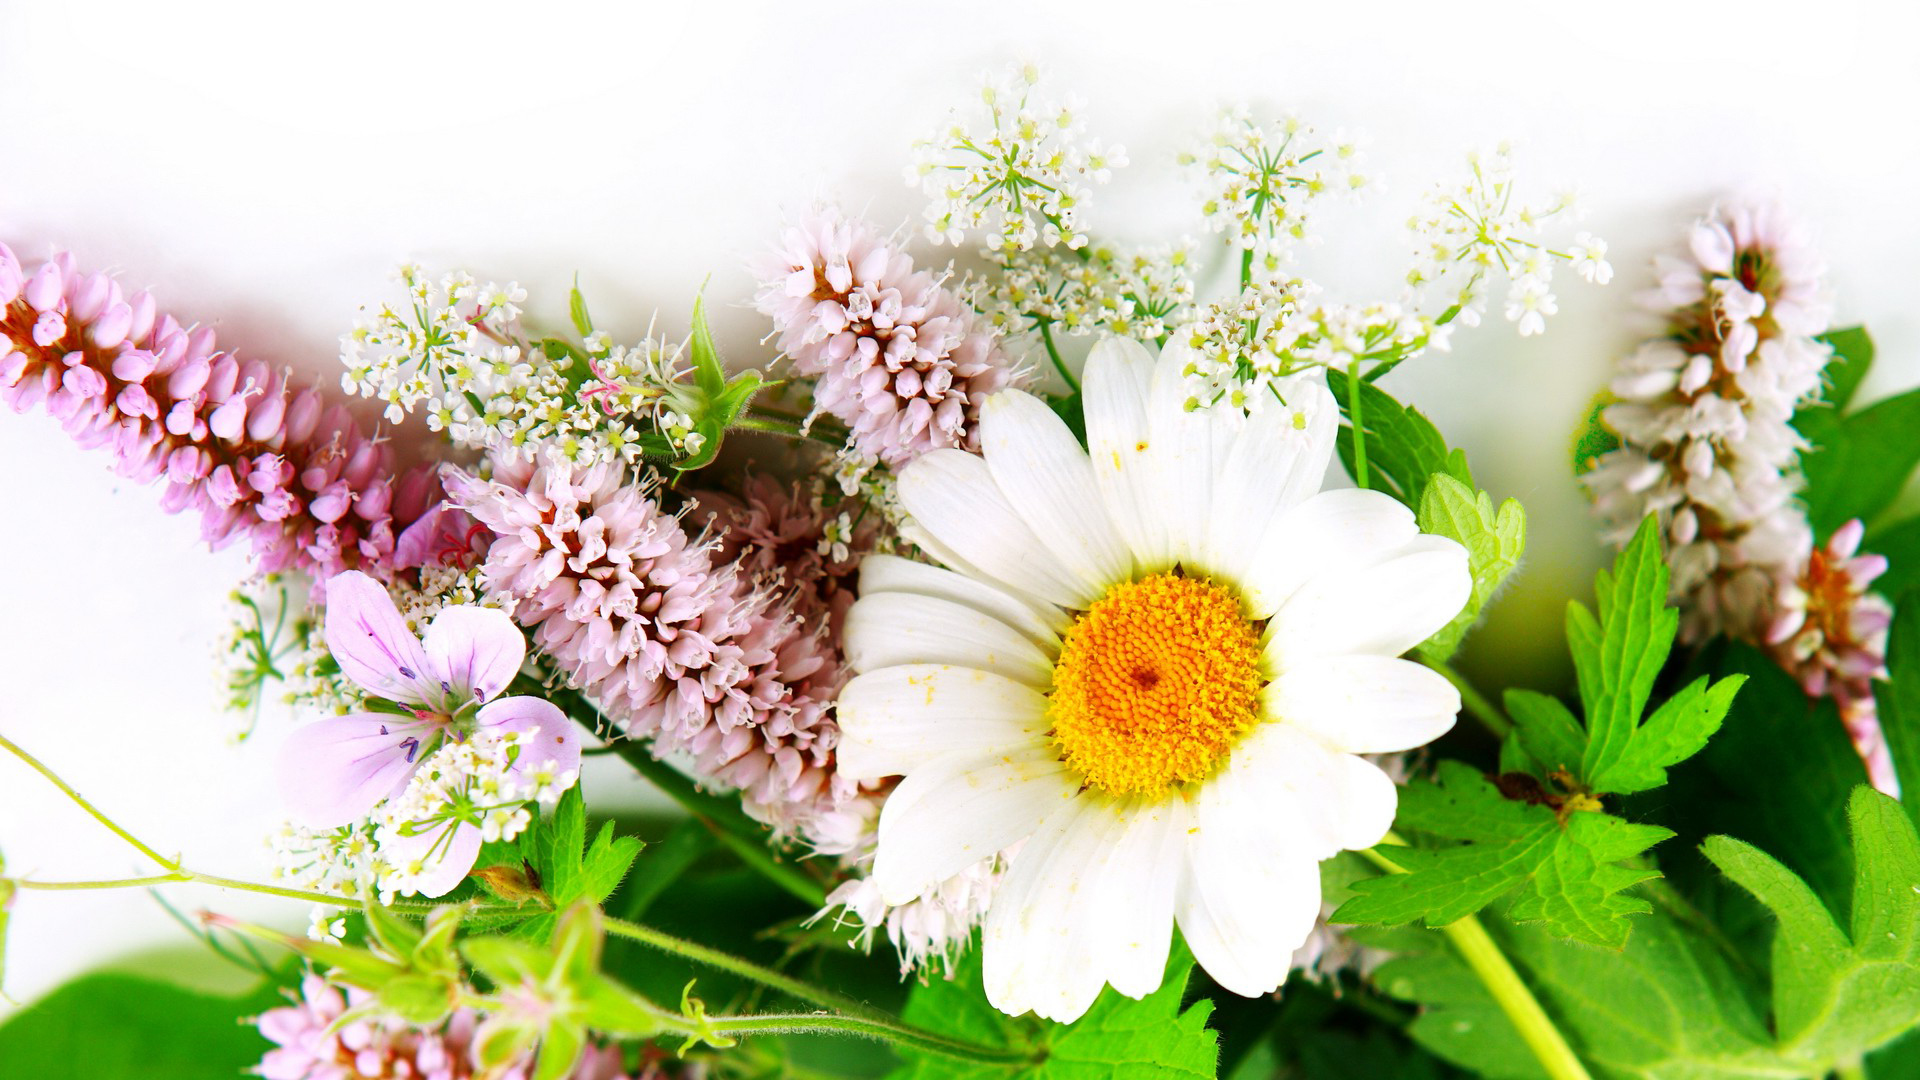 Download HD Wallpapers Of Flowers